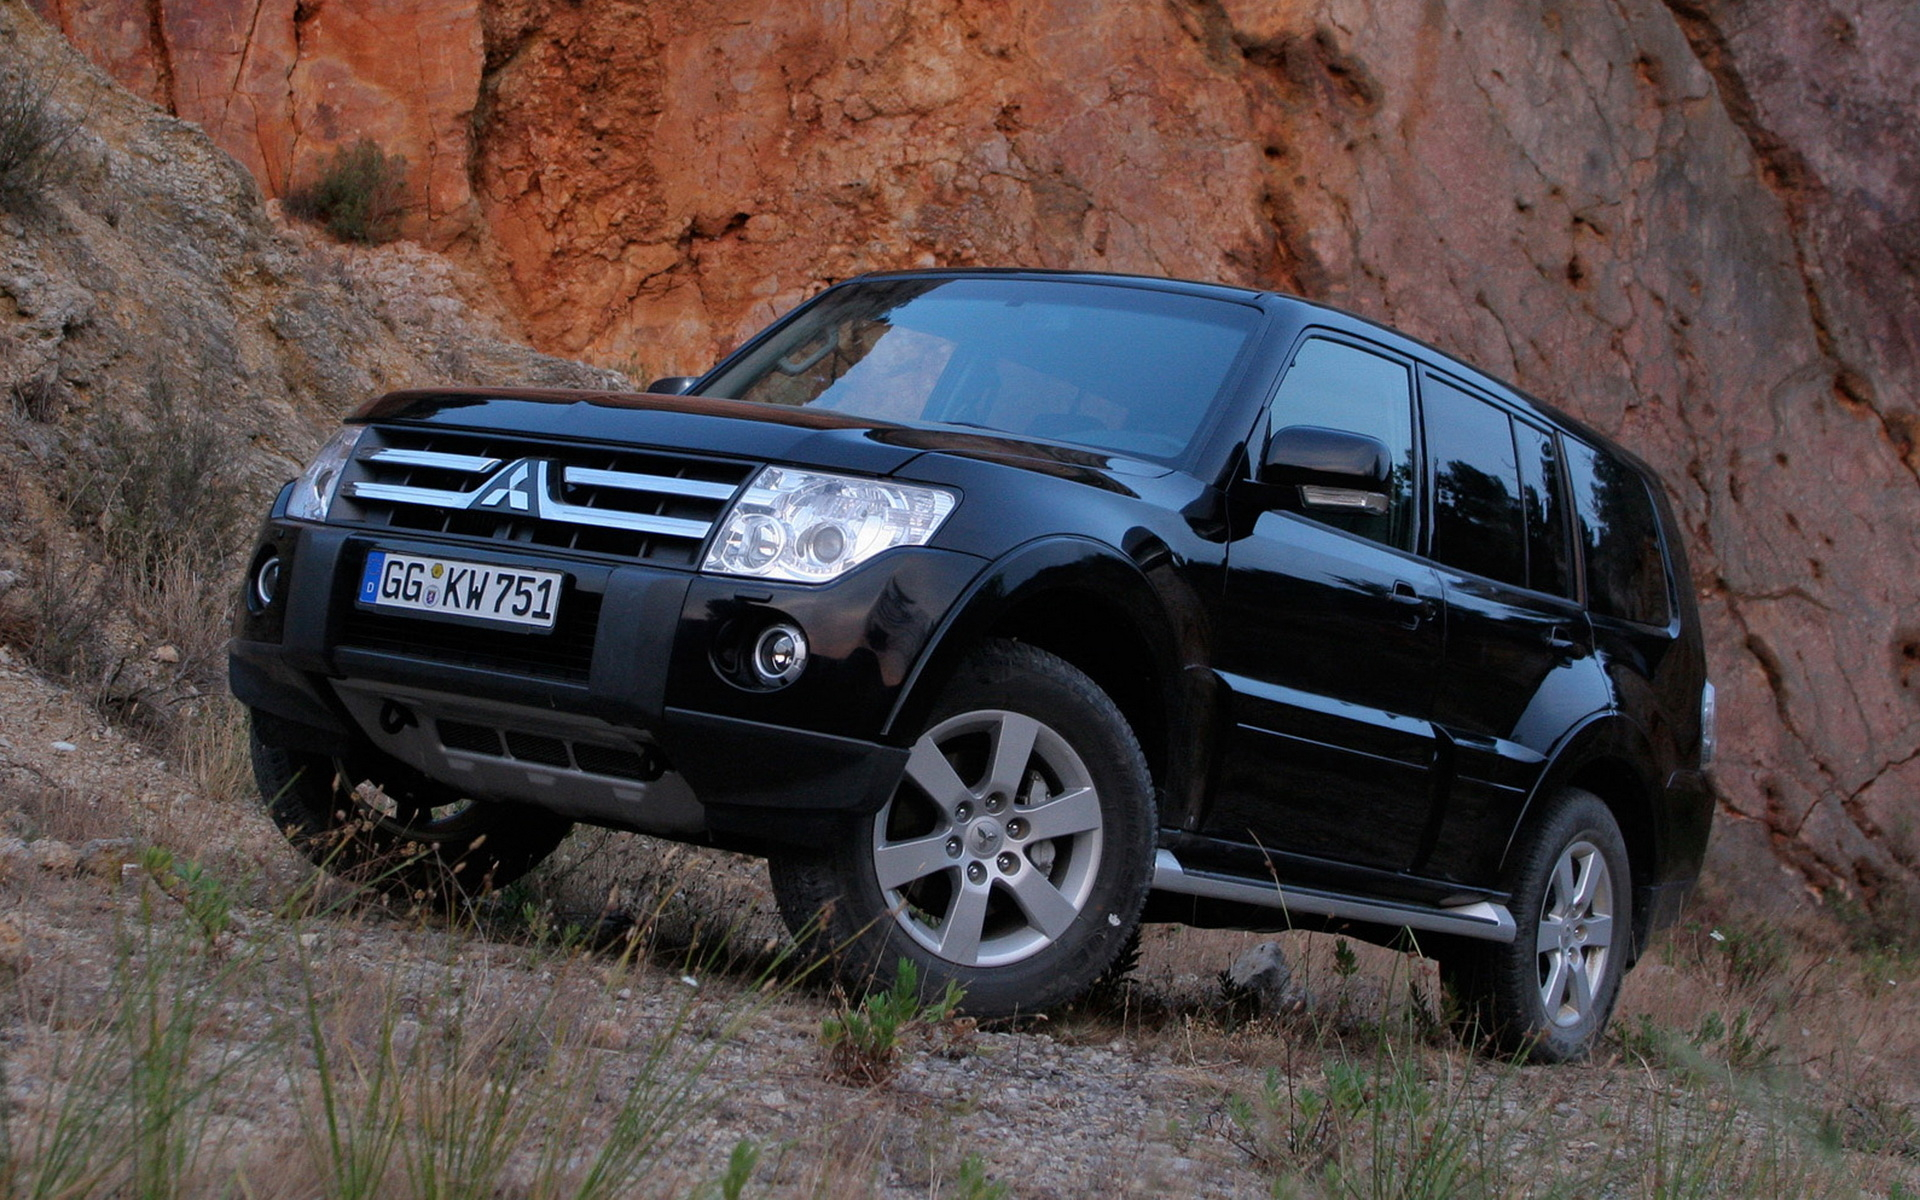 mitsubishi pajero wallpapers and images - wallpapers, pictures, photos